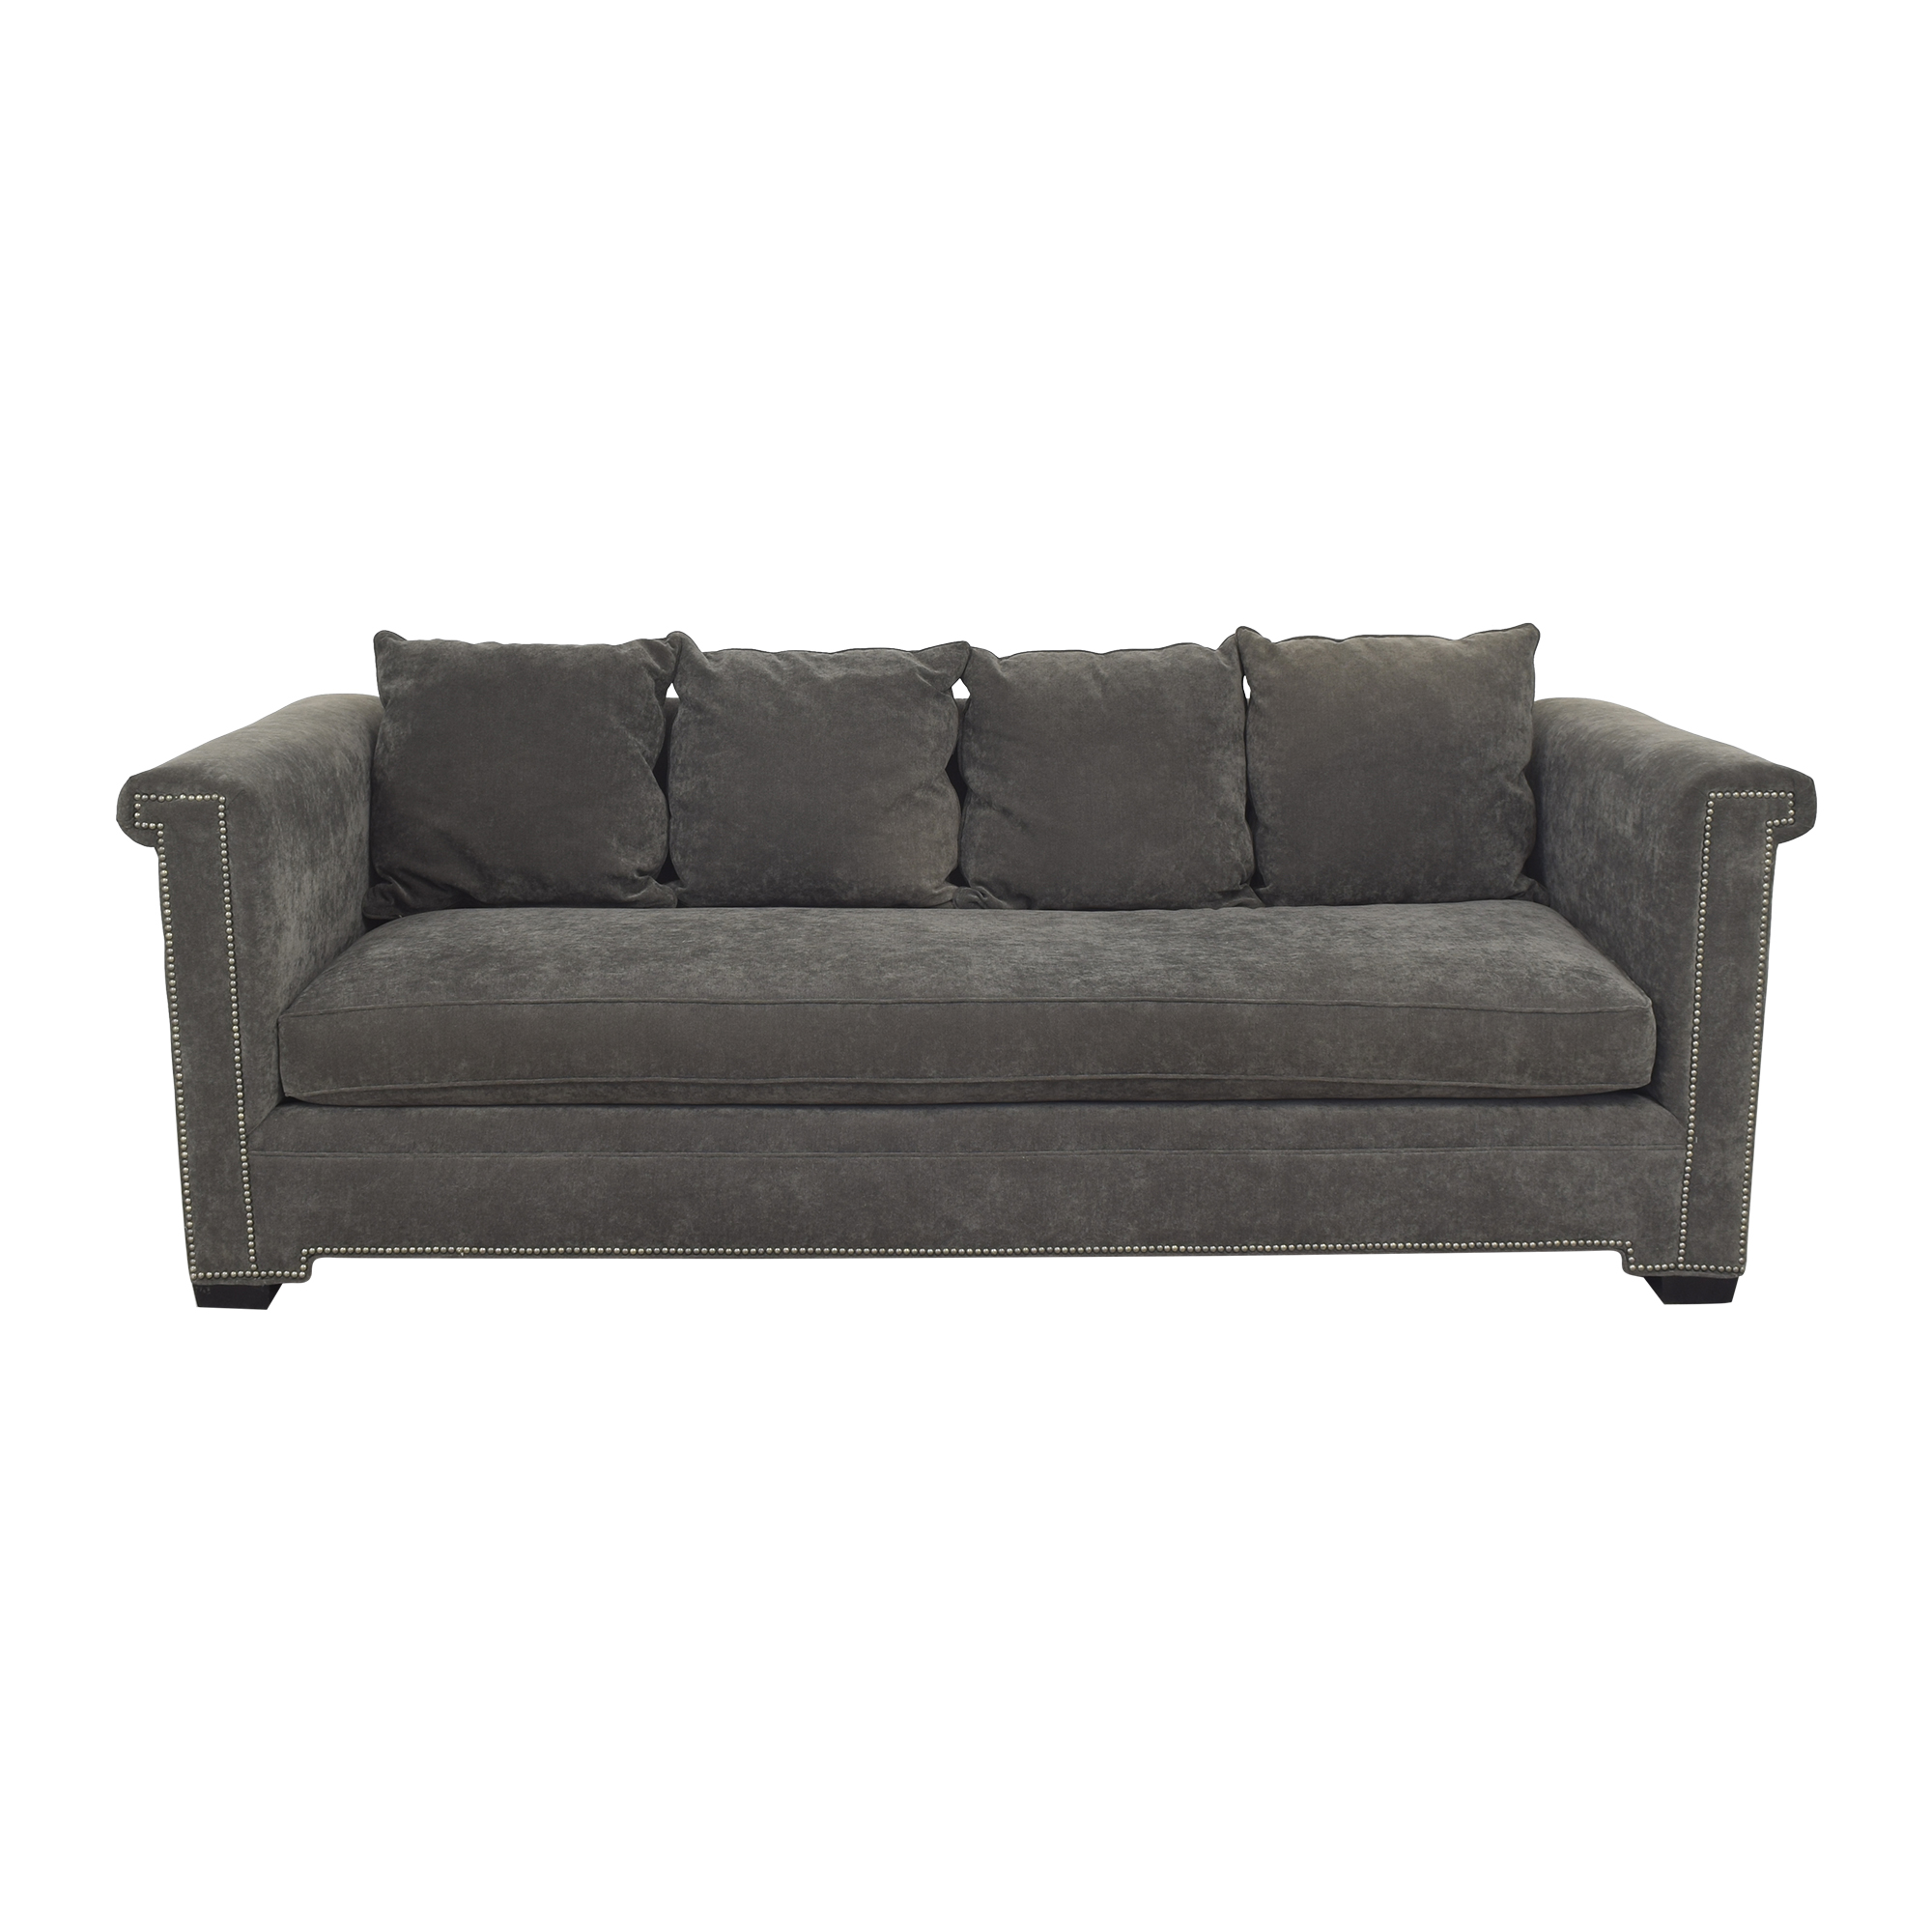 Gabby Home Bench Cushion Sofa sale